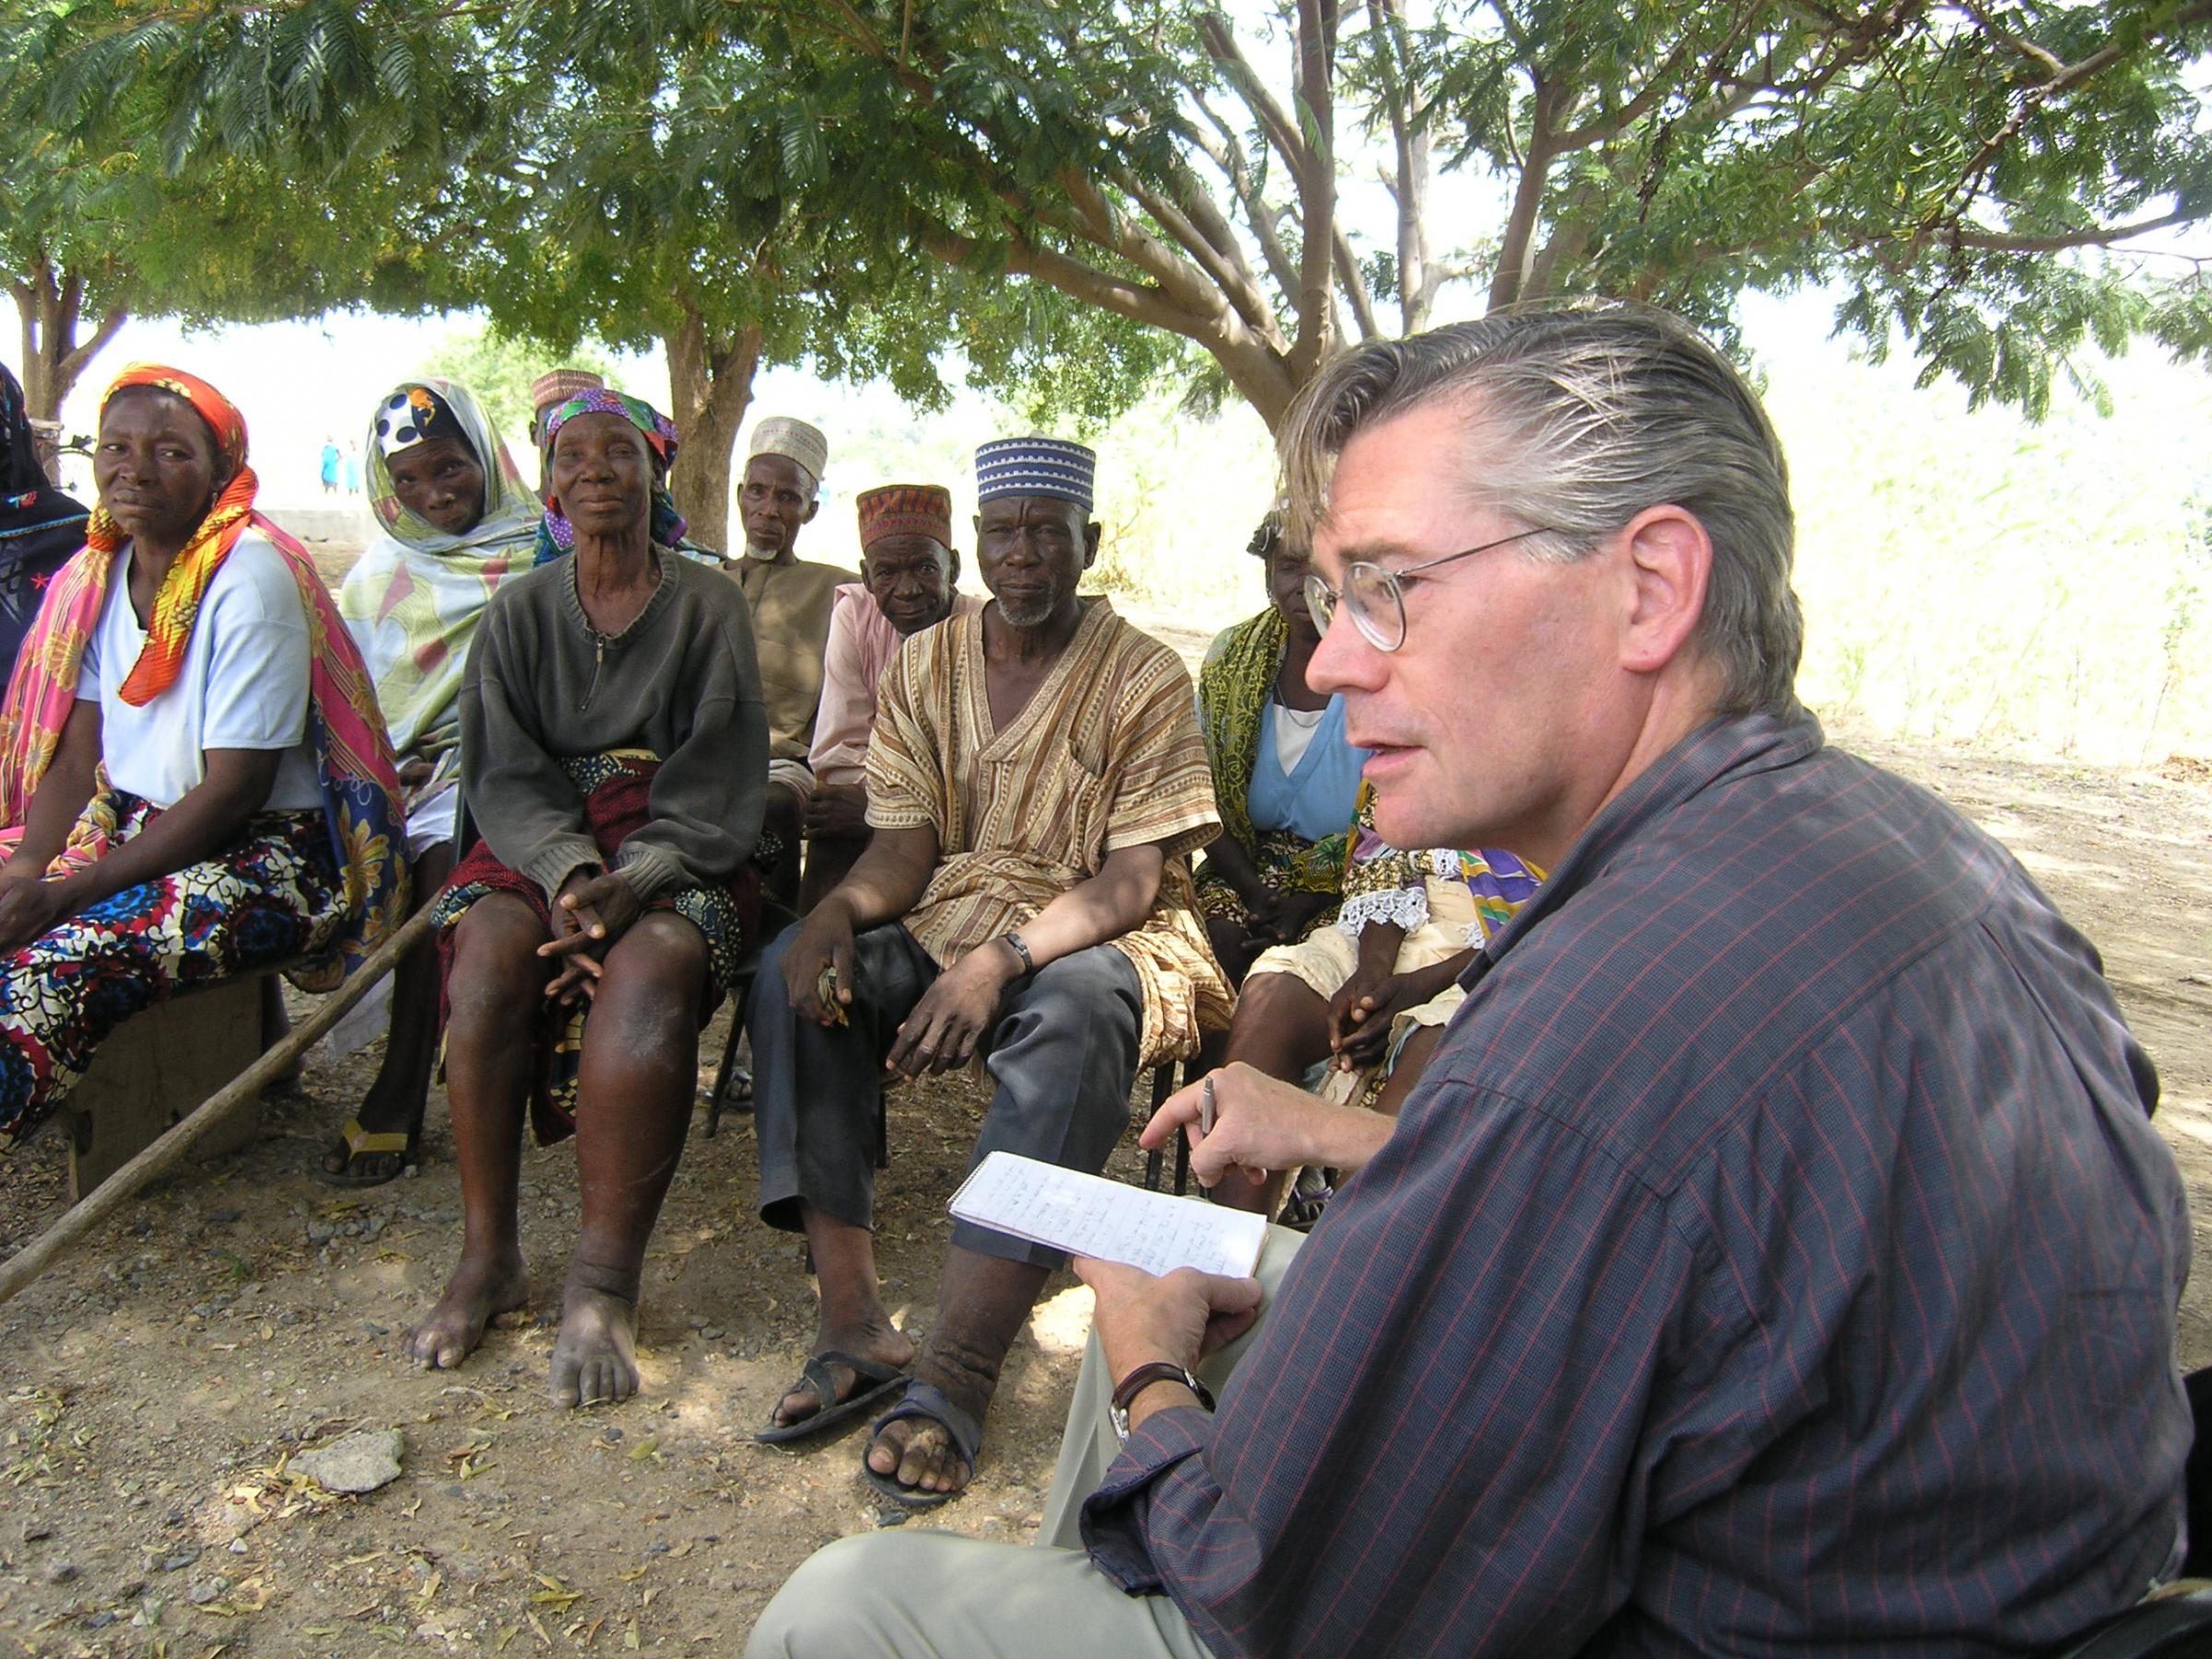 McNeil in foreground outdoors; several Nigerian men and women on bench across from him